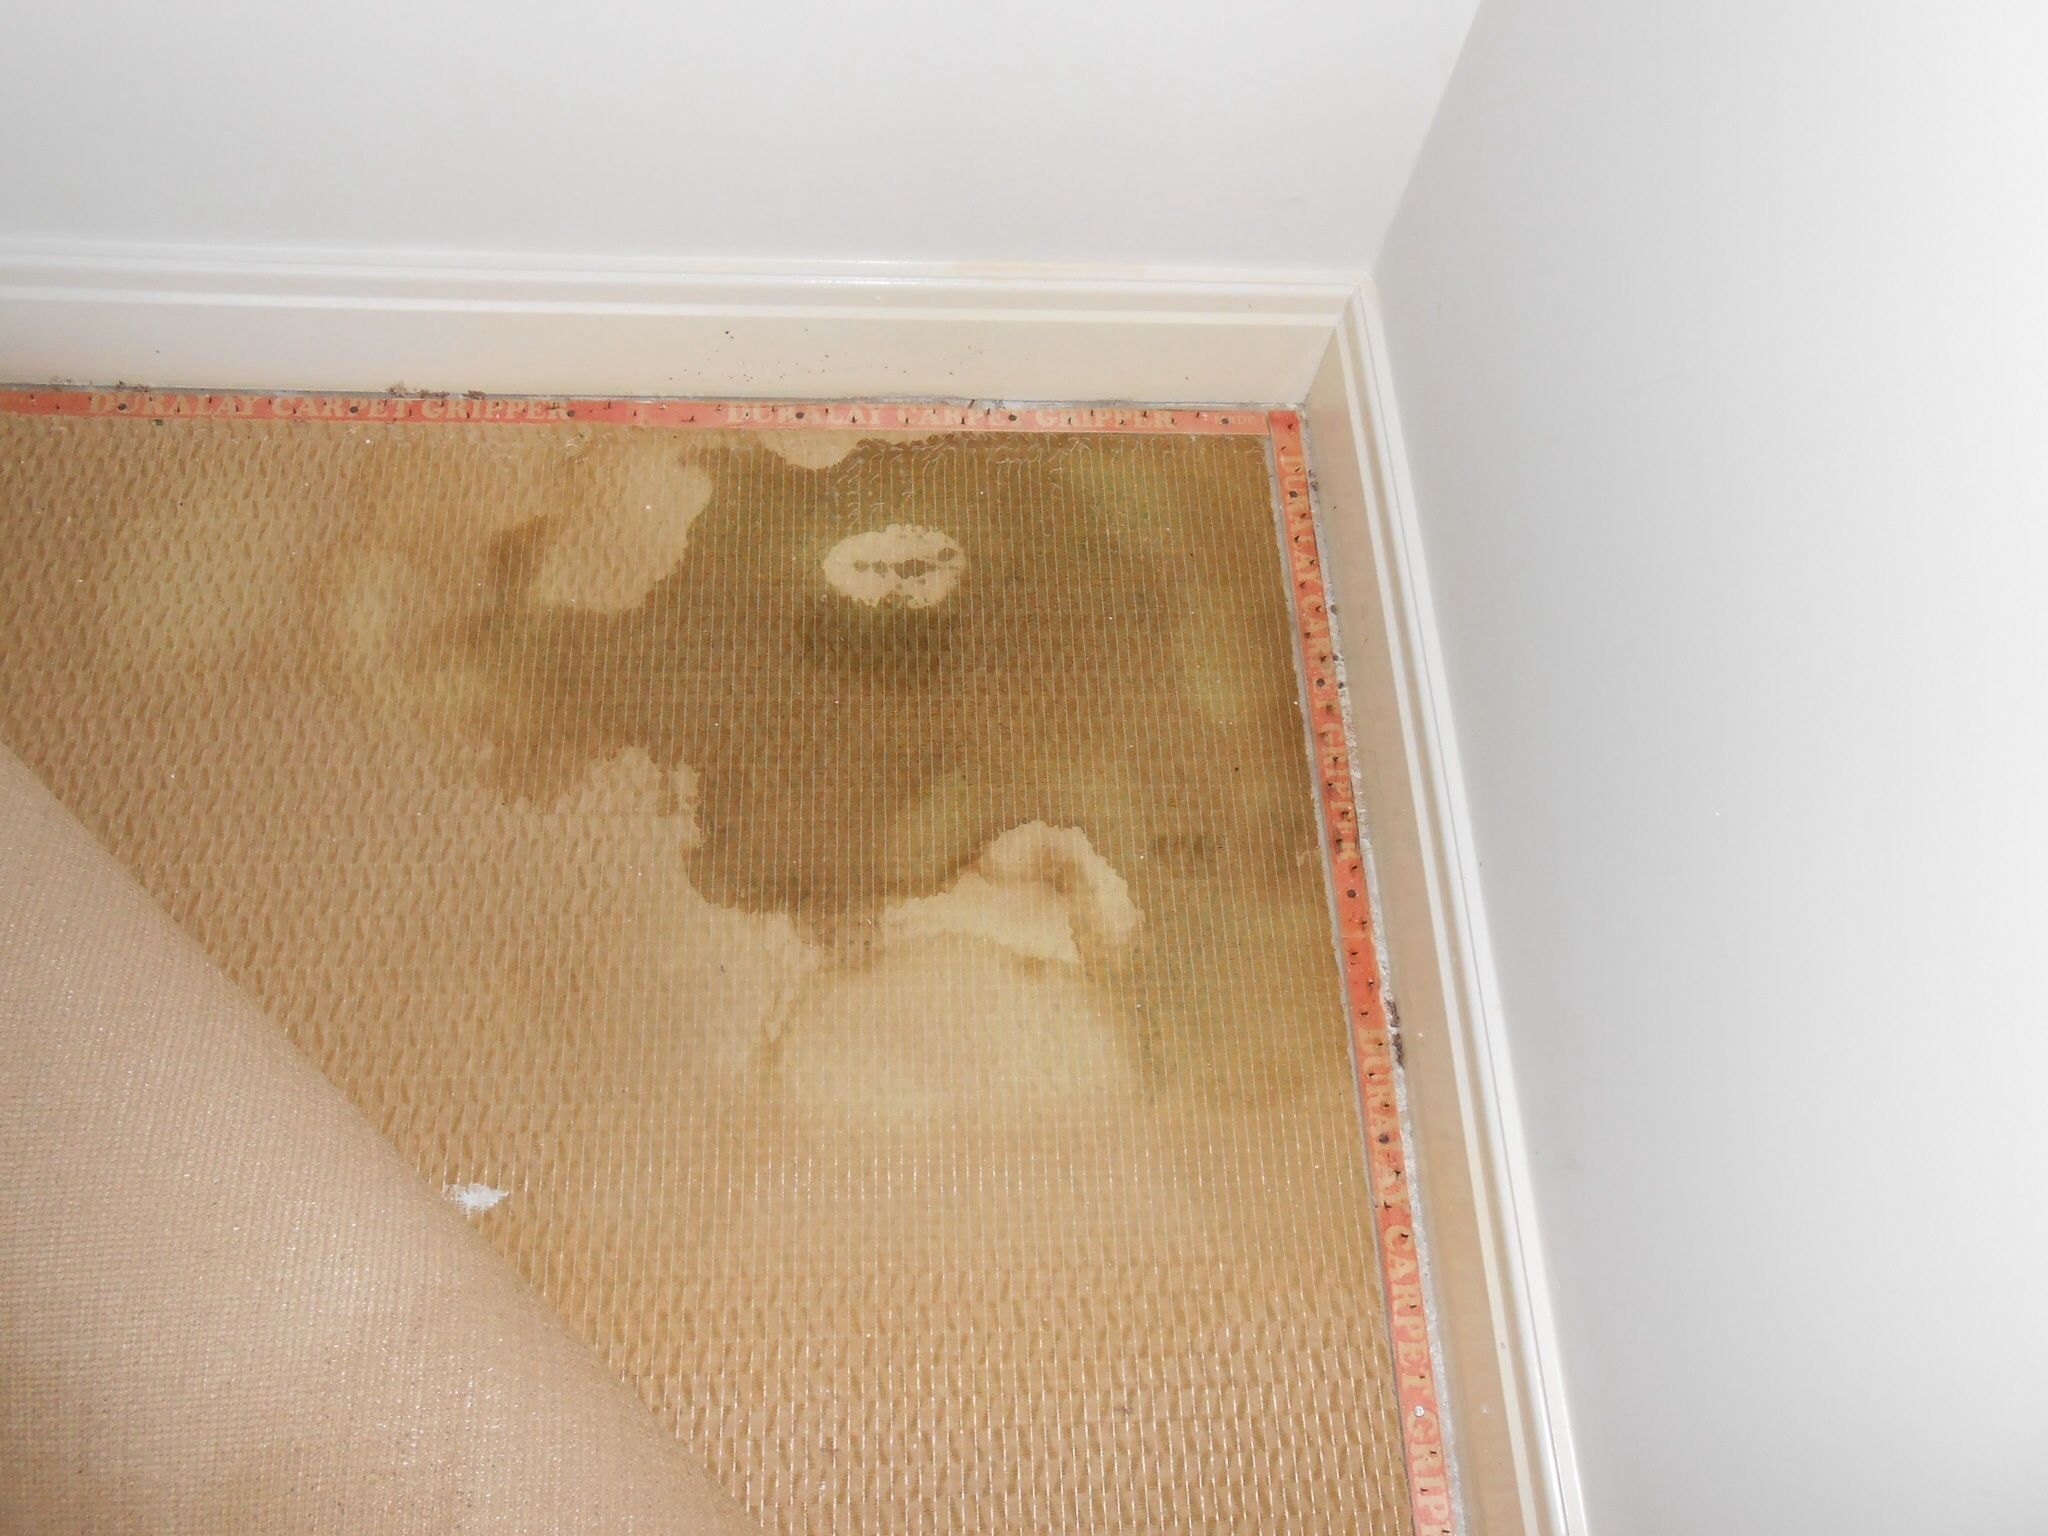 Underlay contaminated with cat urine And they wondered